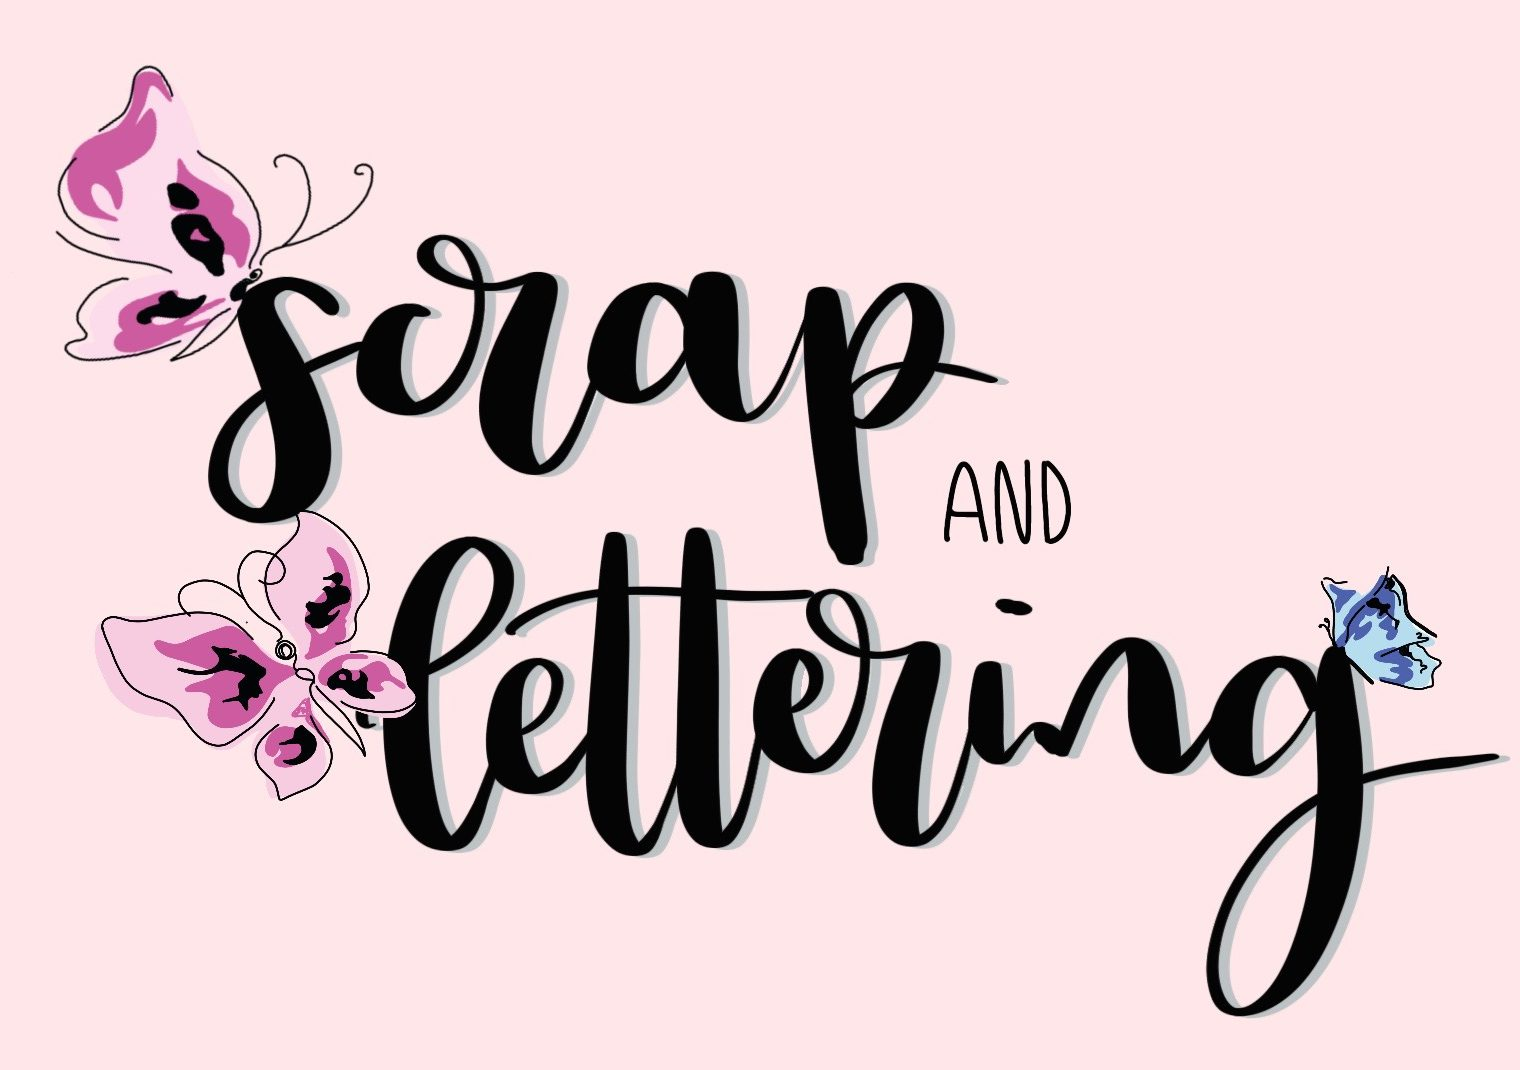 Scrap and lettering